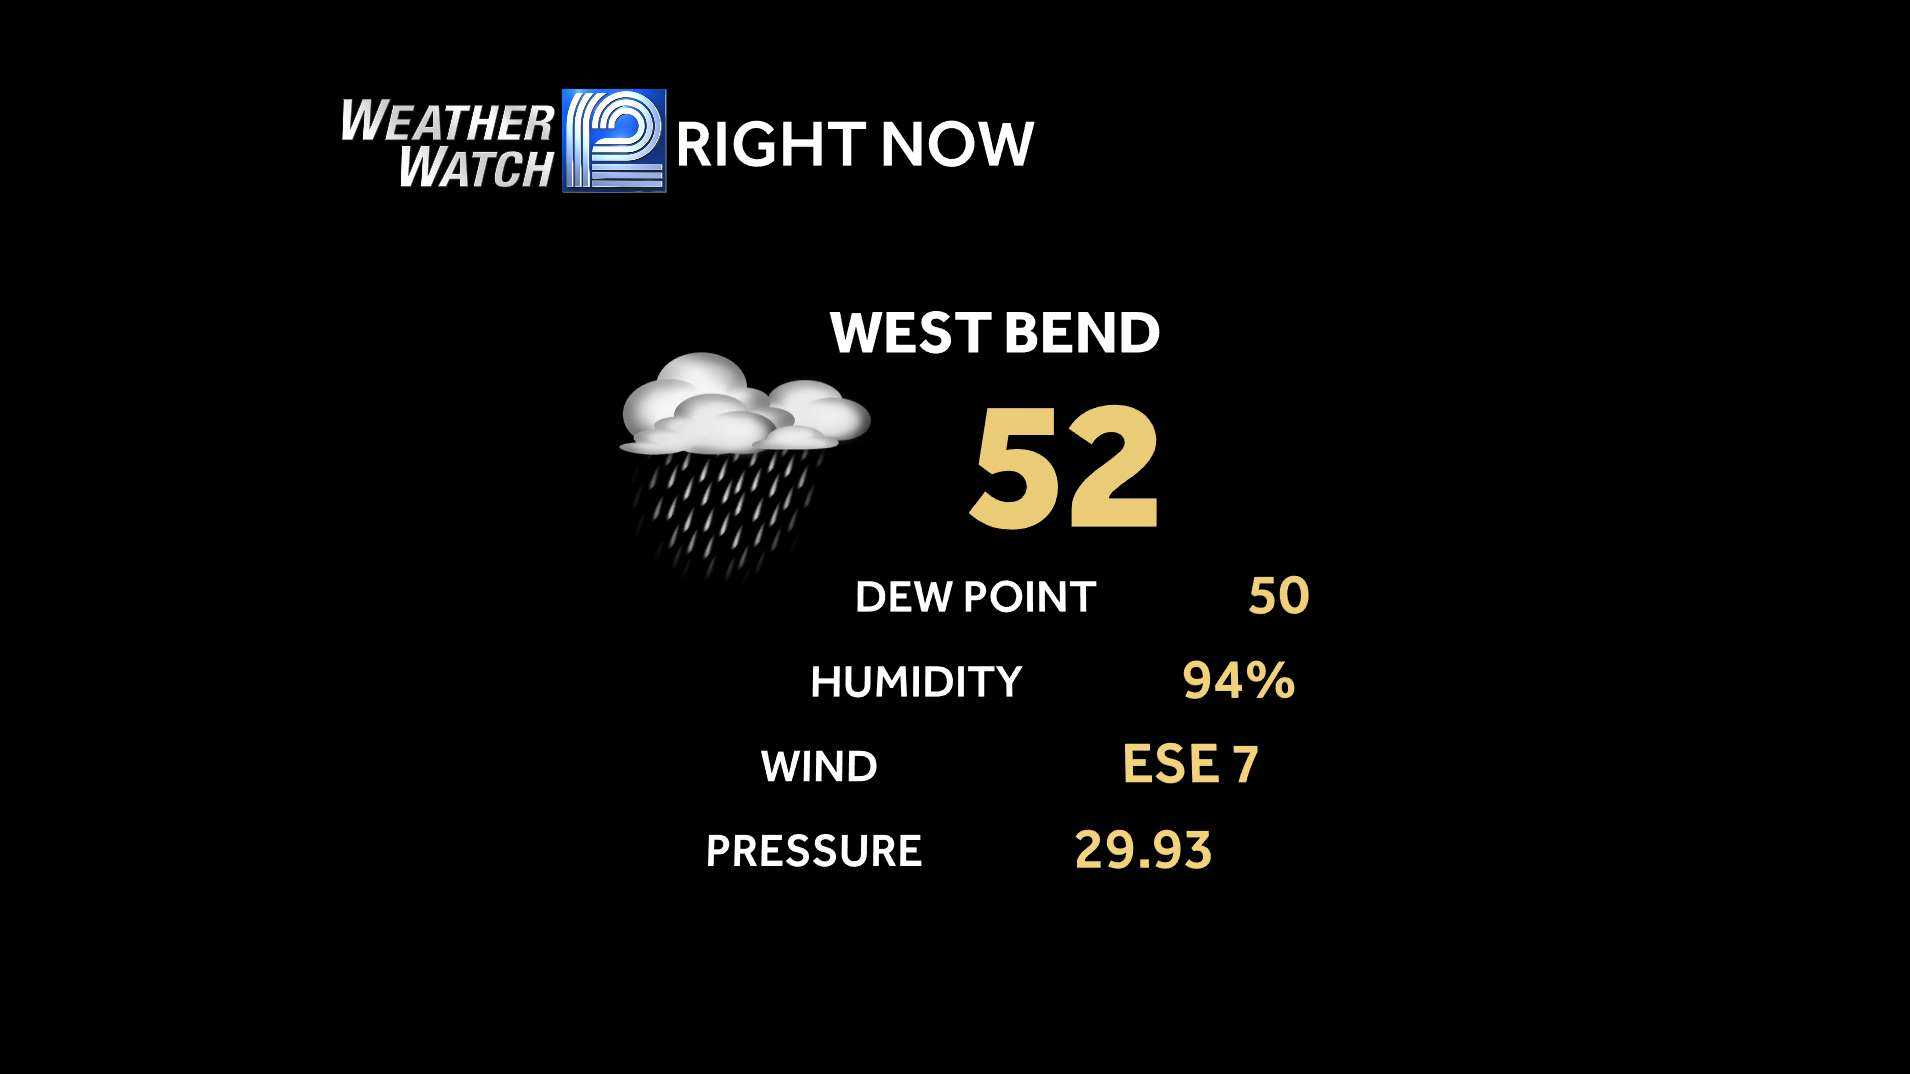 West Bend temperature